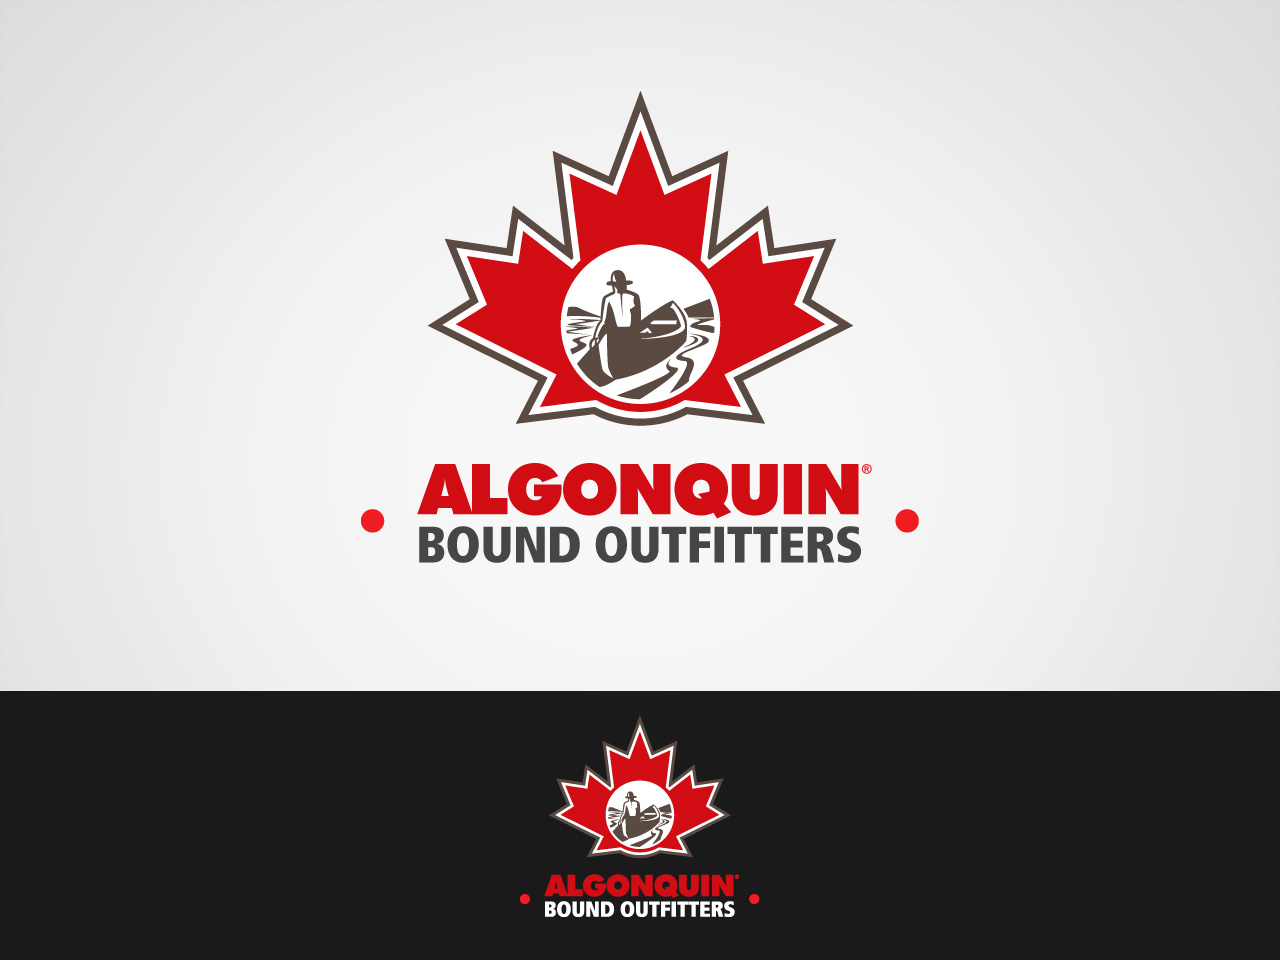 Logo Design by jpbituin - Entry No. 58 in the Logo Design Contest Captivating Logo Design for Algonquin Bound Outfitters.